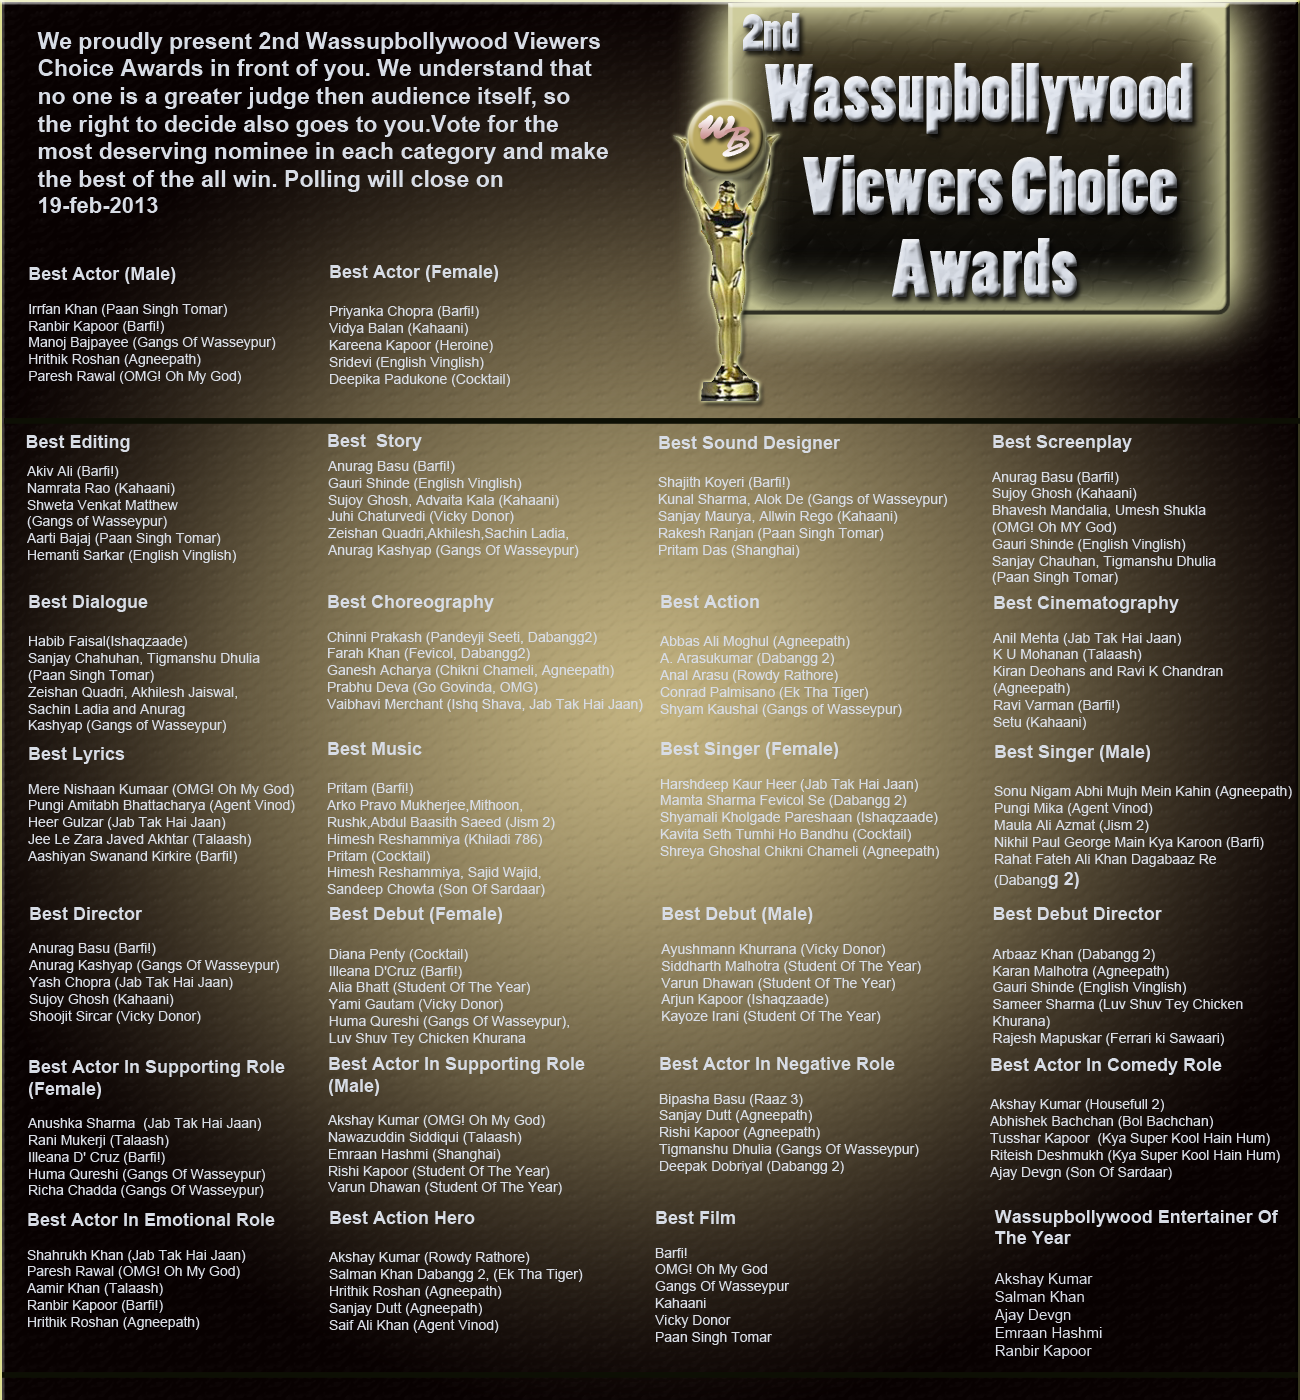 Voting Starts for 2nd Wassupbollywood Viewers Choice Awards